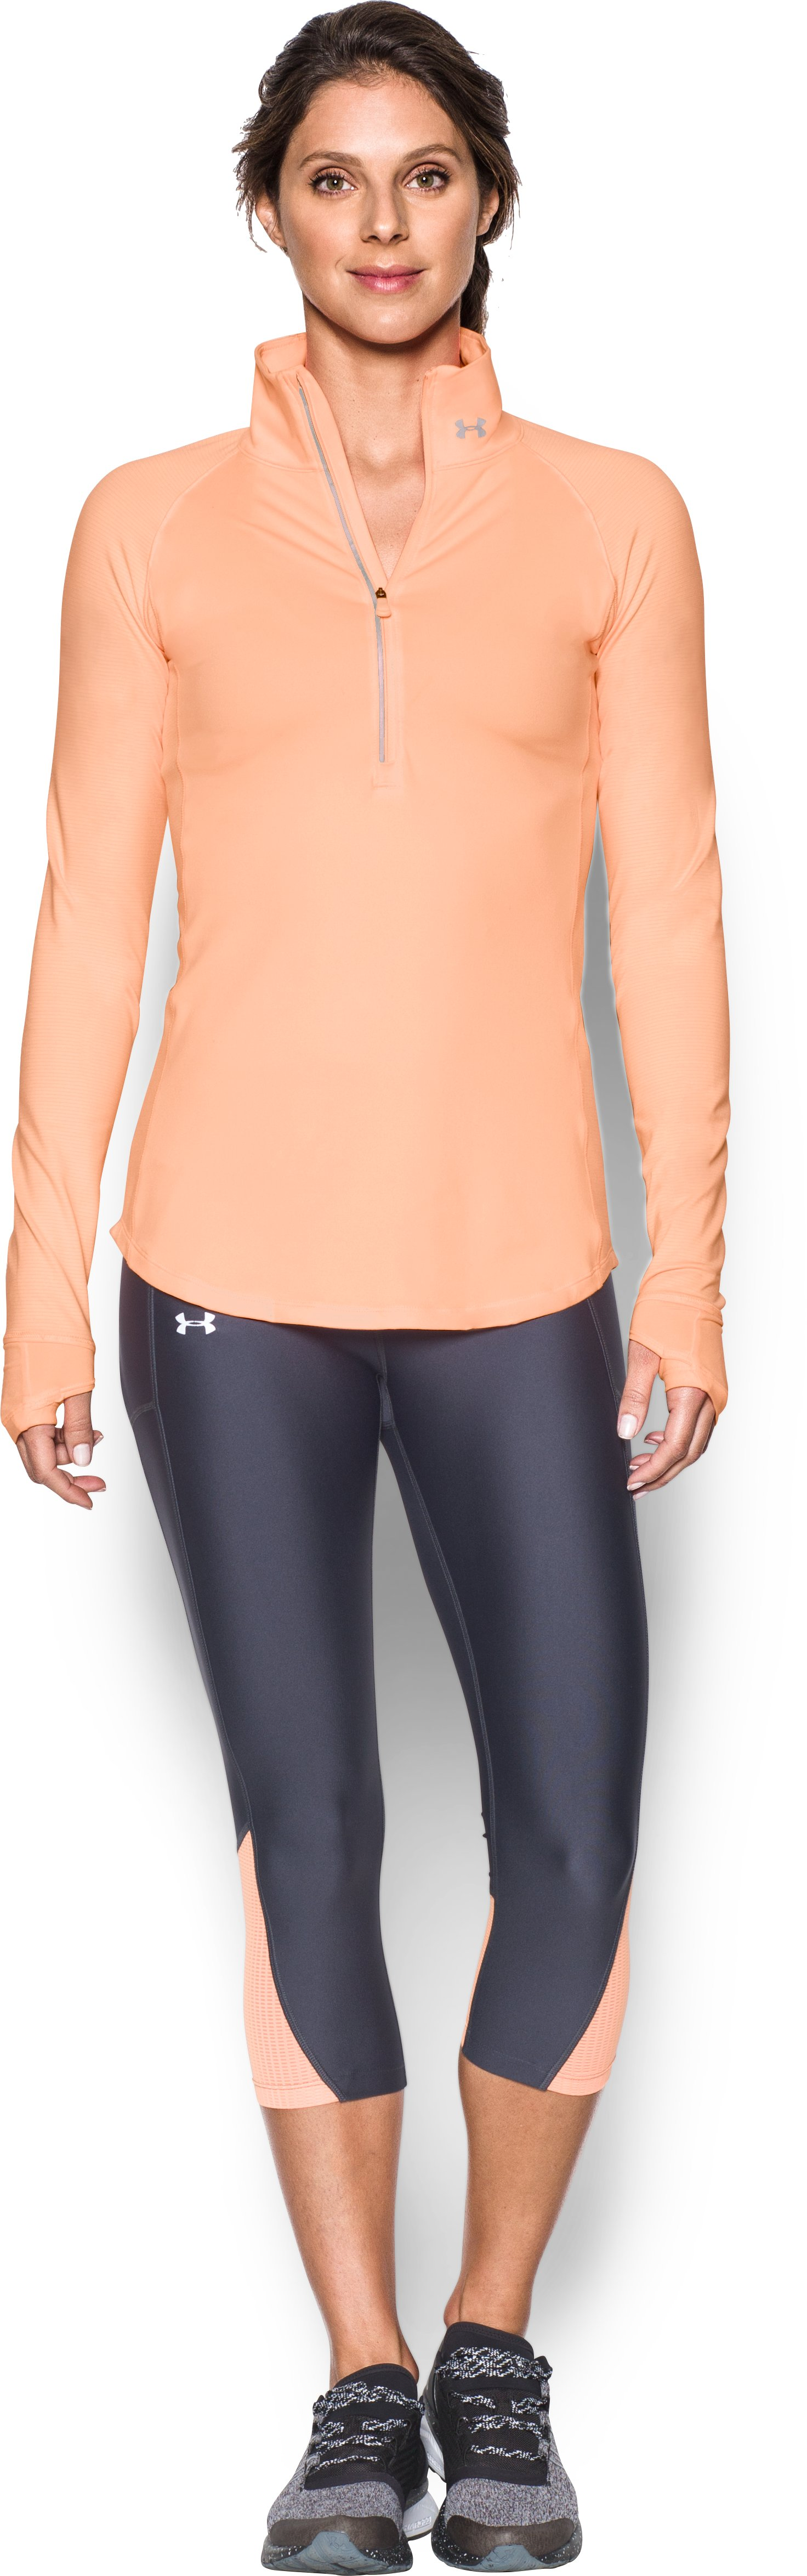 Women's UA Threadborne Run True 1/2 Zip, PLAYFUL PEACH